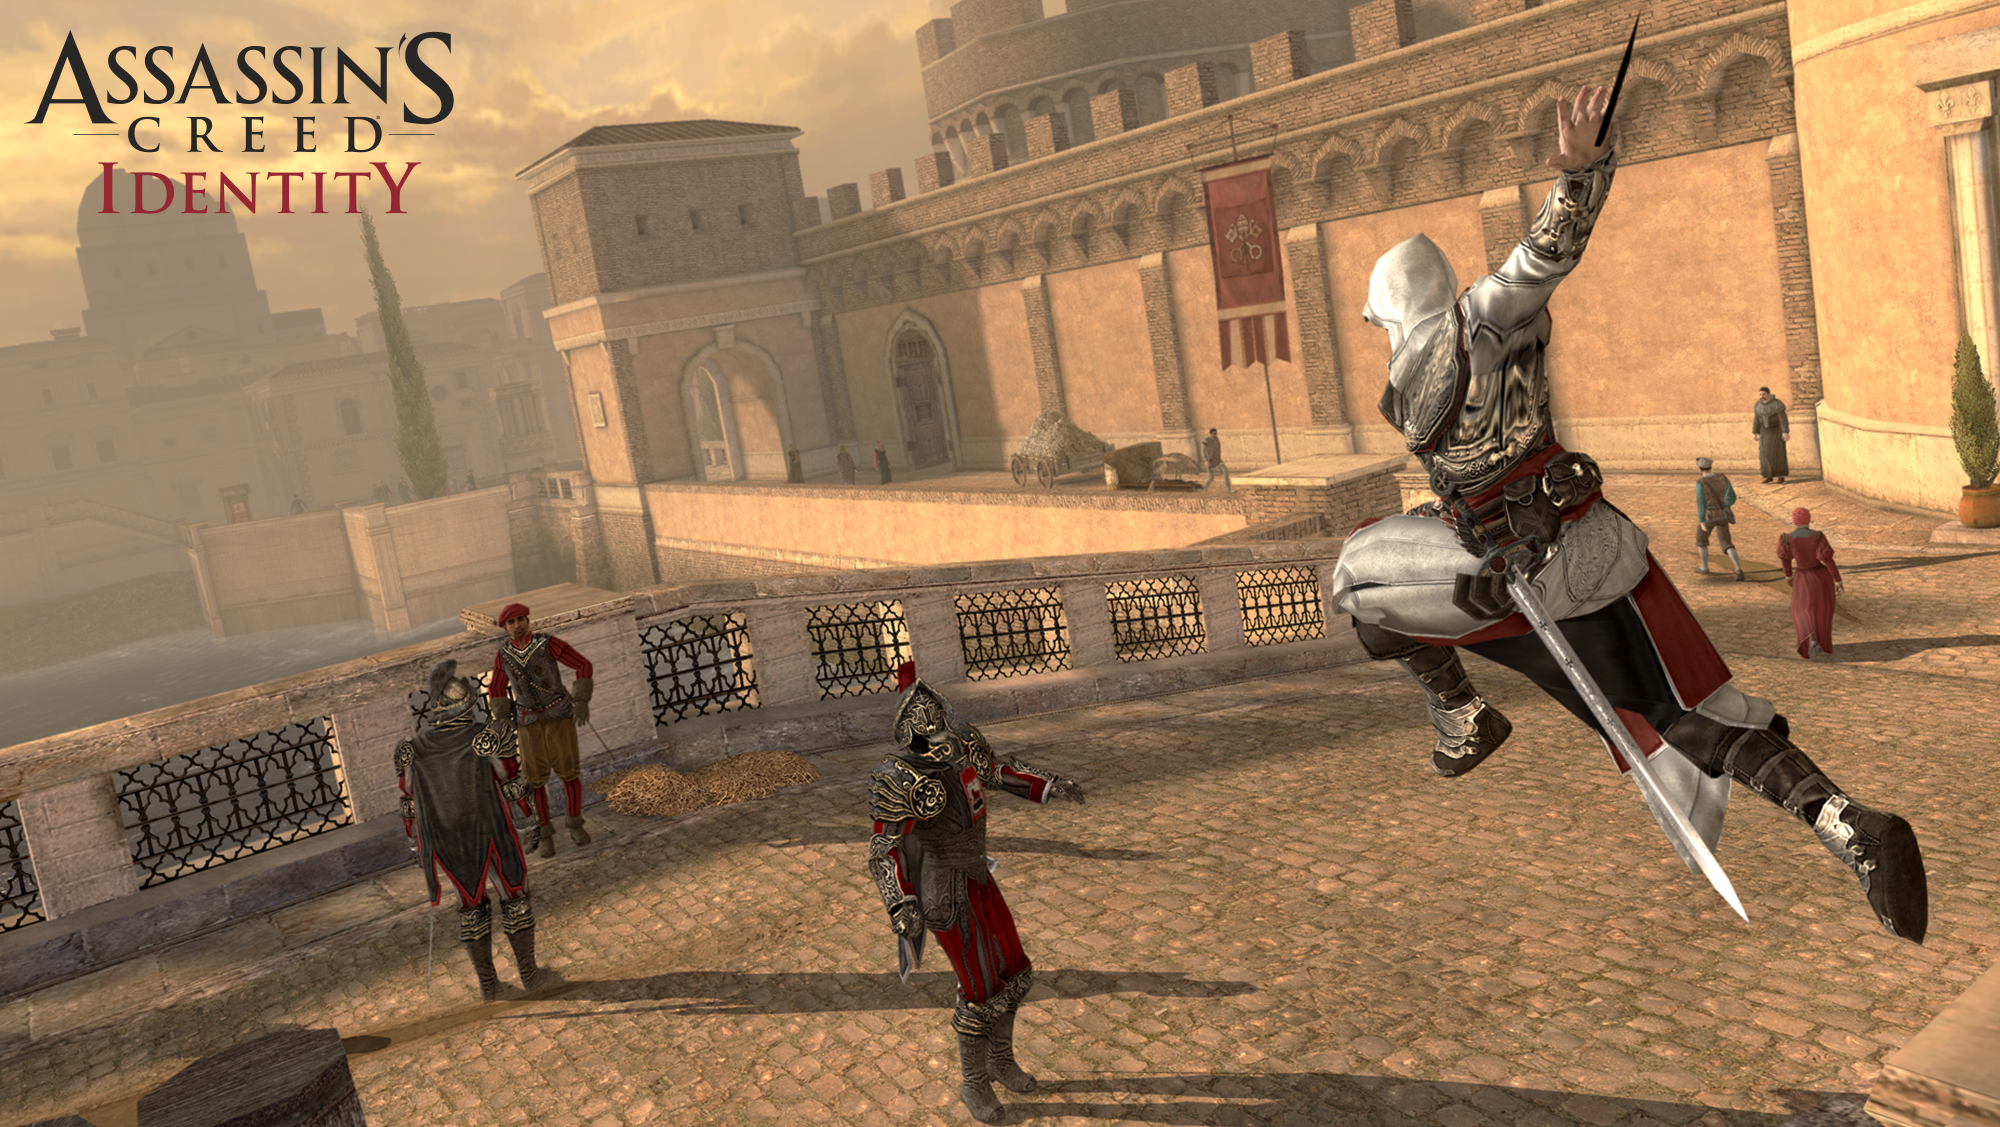 assassins creed identity (5)